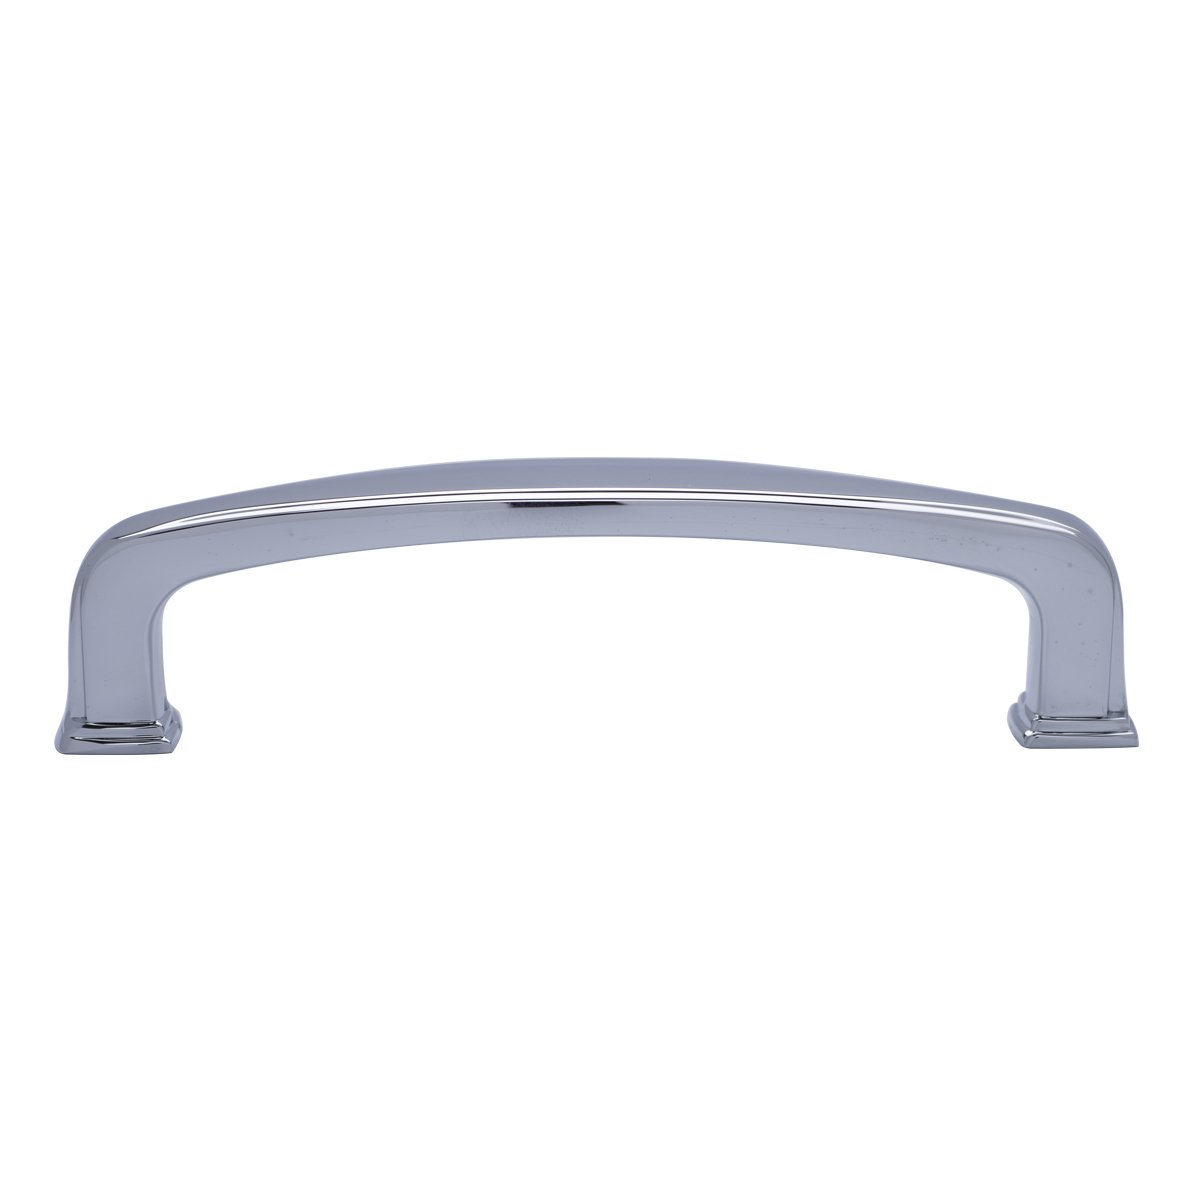 3.75 Hole Center Basics Traditional Arch Cabinet Handle Antique Silver 10-Pack 4.38 Length